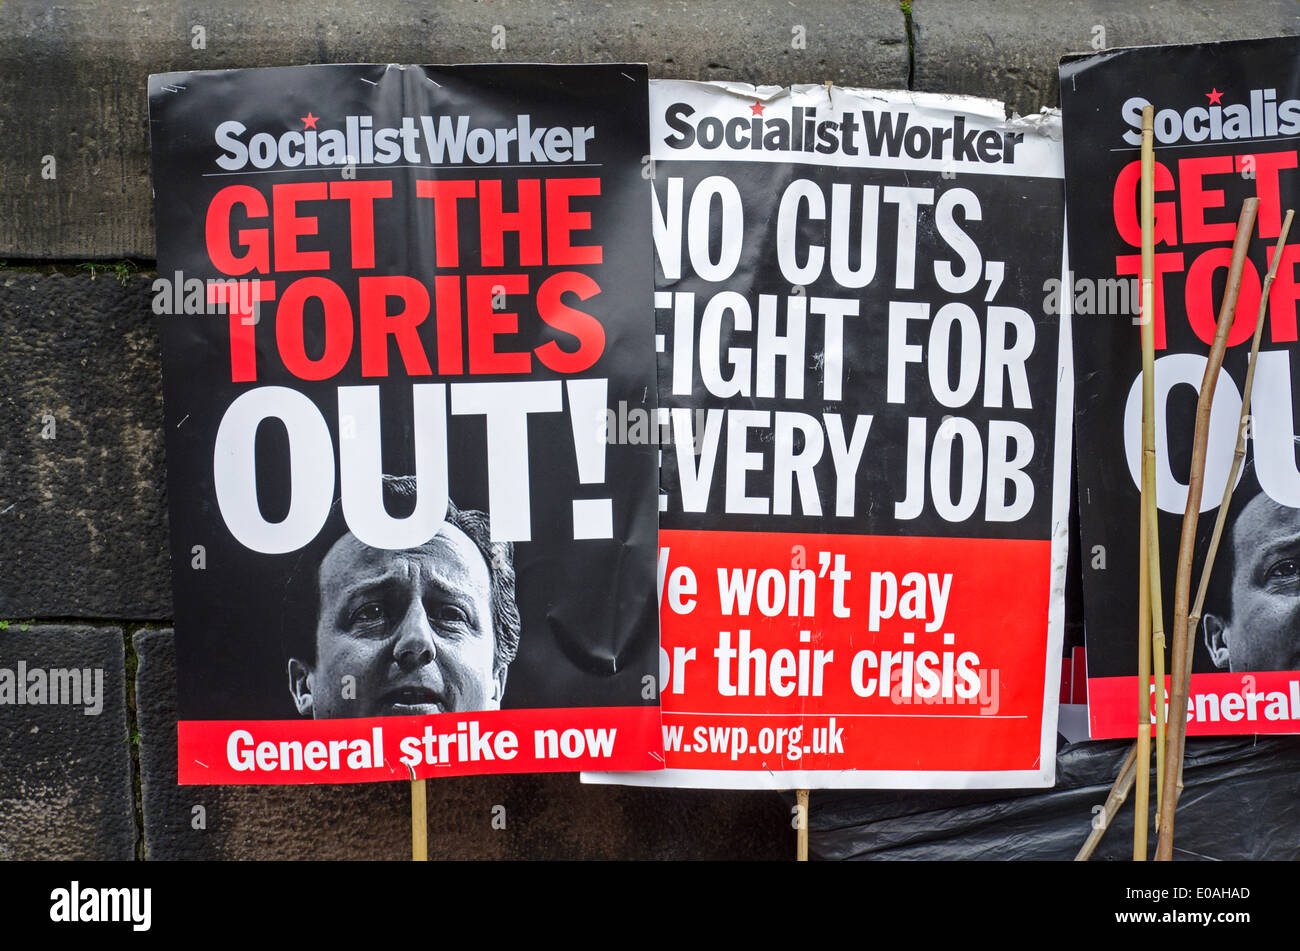 Socialist Worker placards depicting David Cameron lean against a wall prior to the May Day Rally in Edinburgh, Scotland, UK. - Stock Image